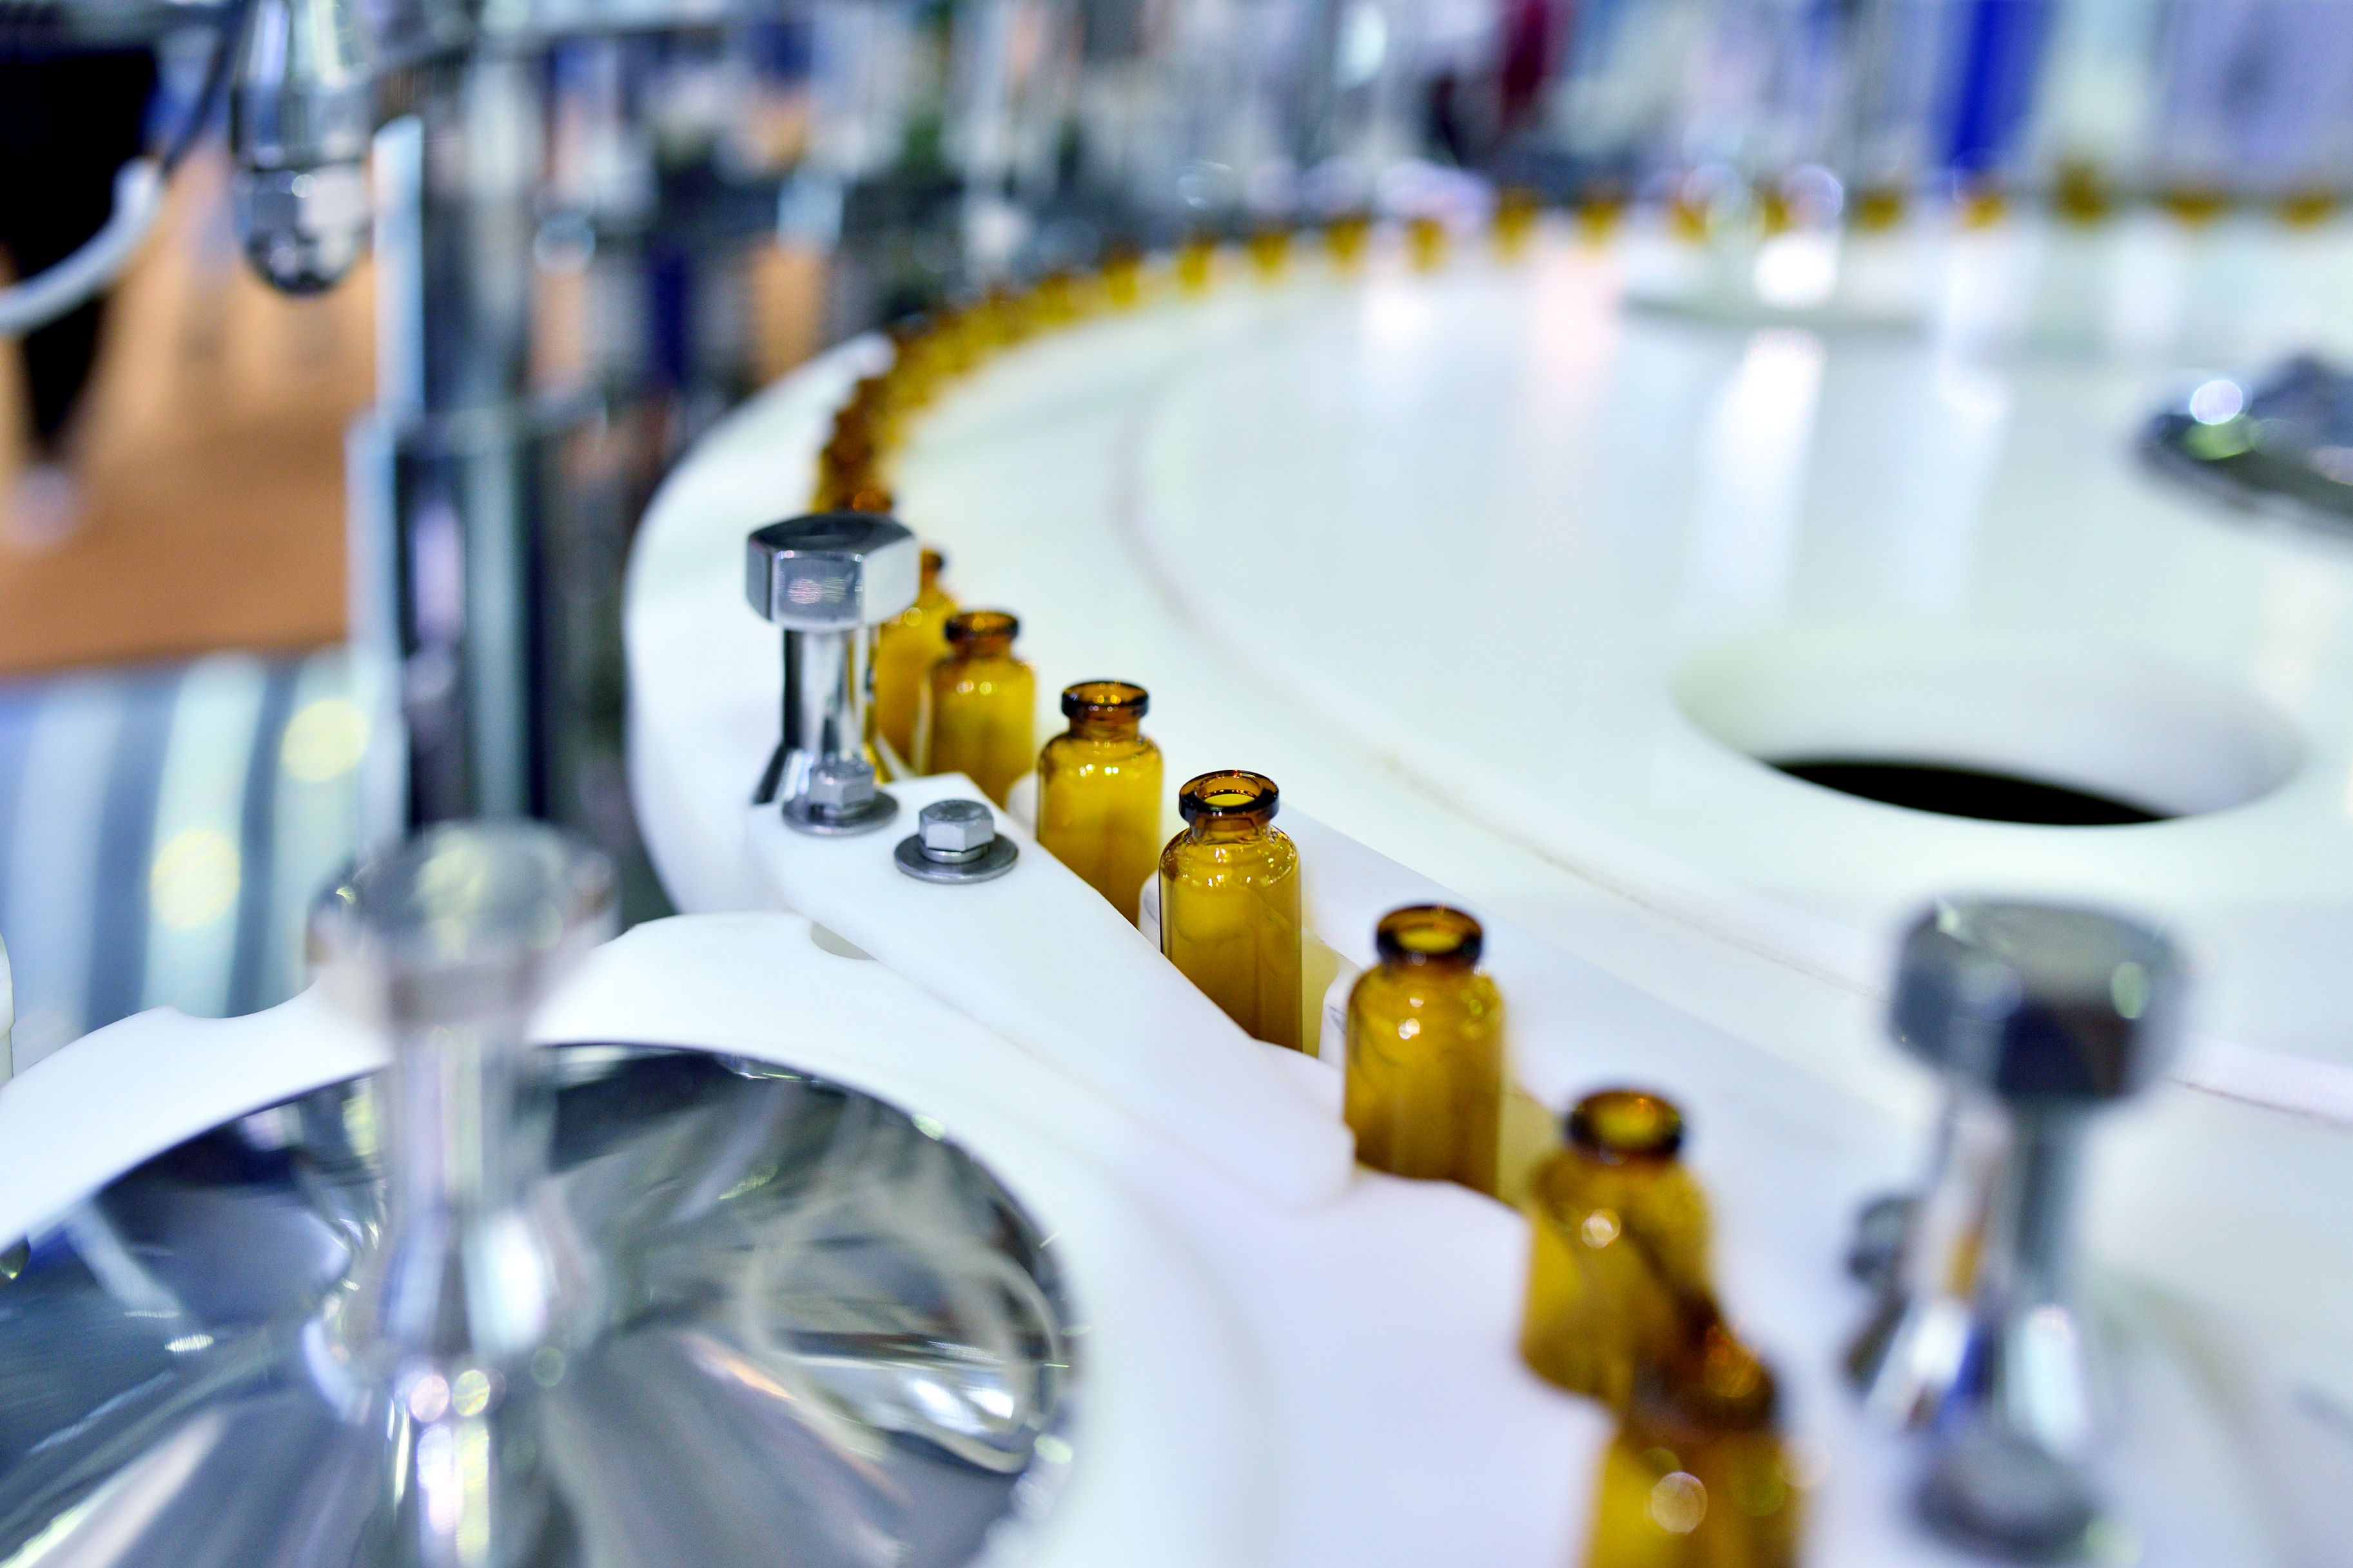 Close-up of brown glass bottles at turntable production line.